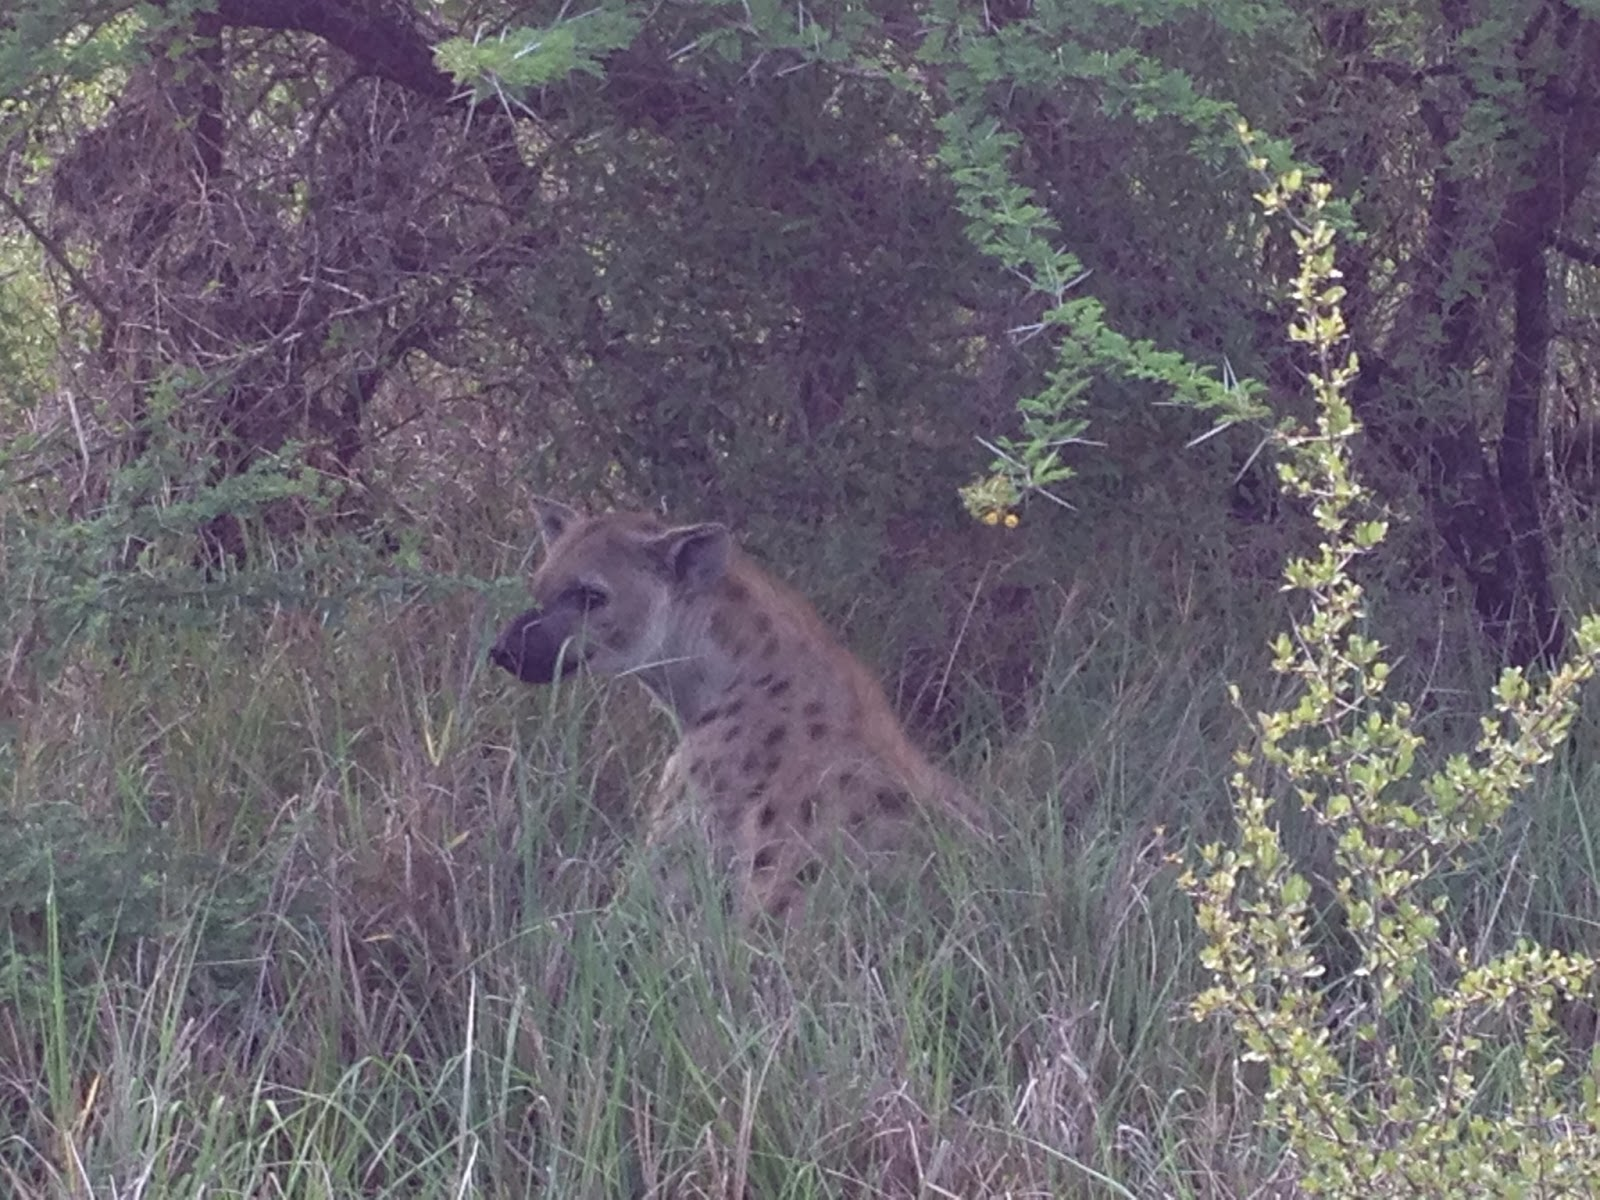 Sabi Sands - Spotted another hyena